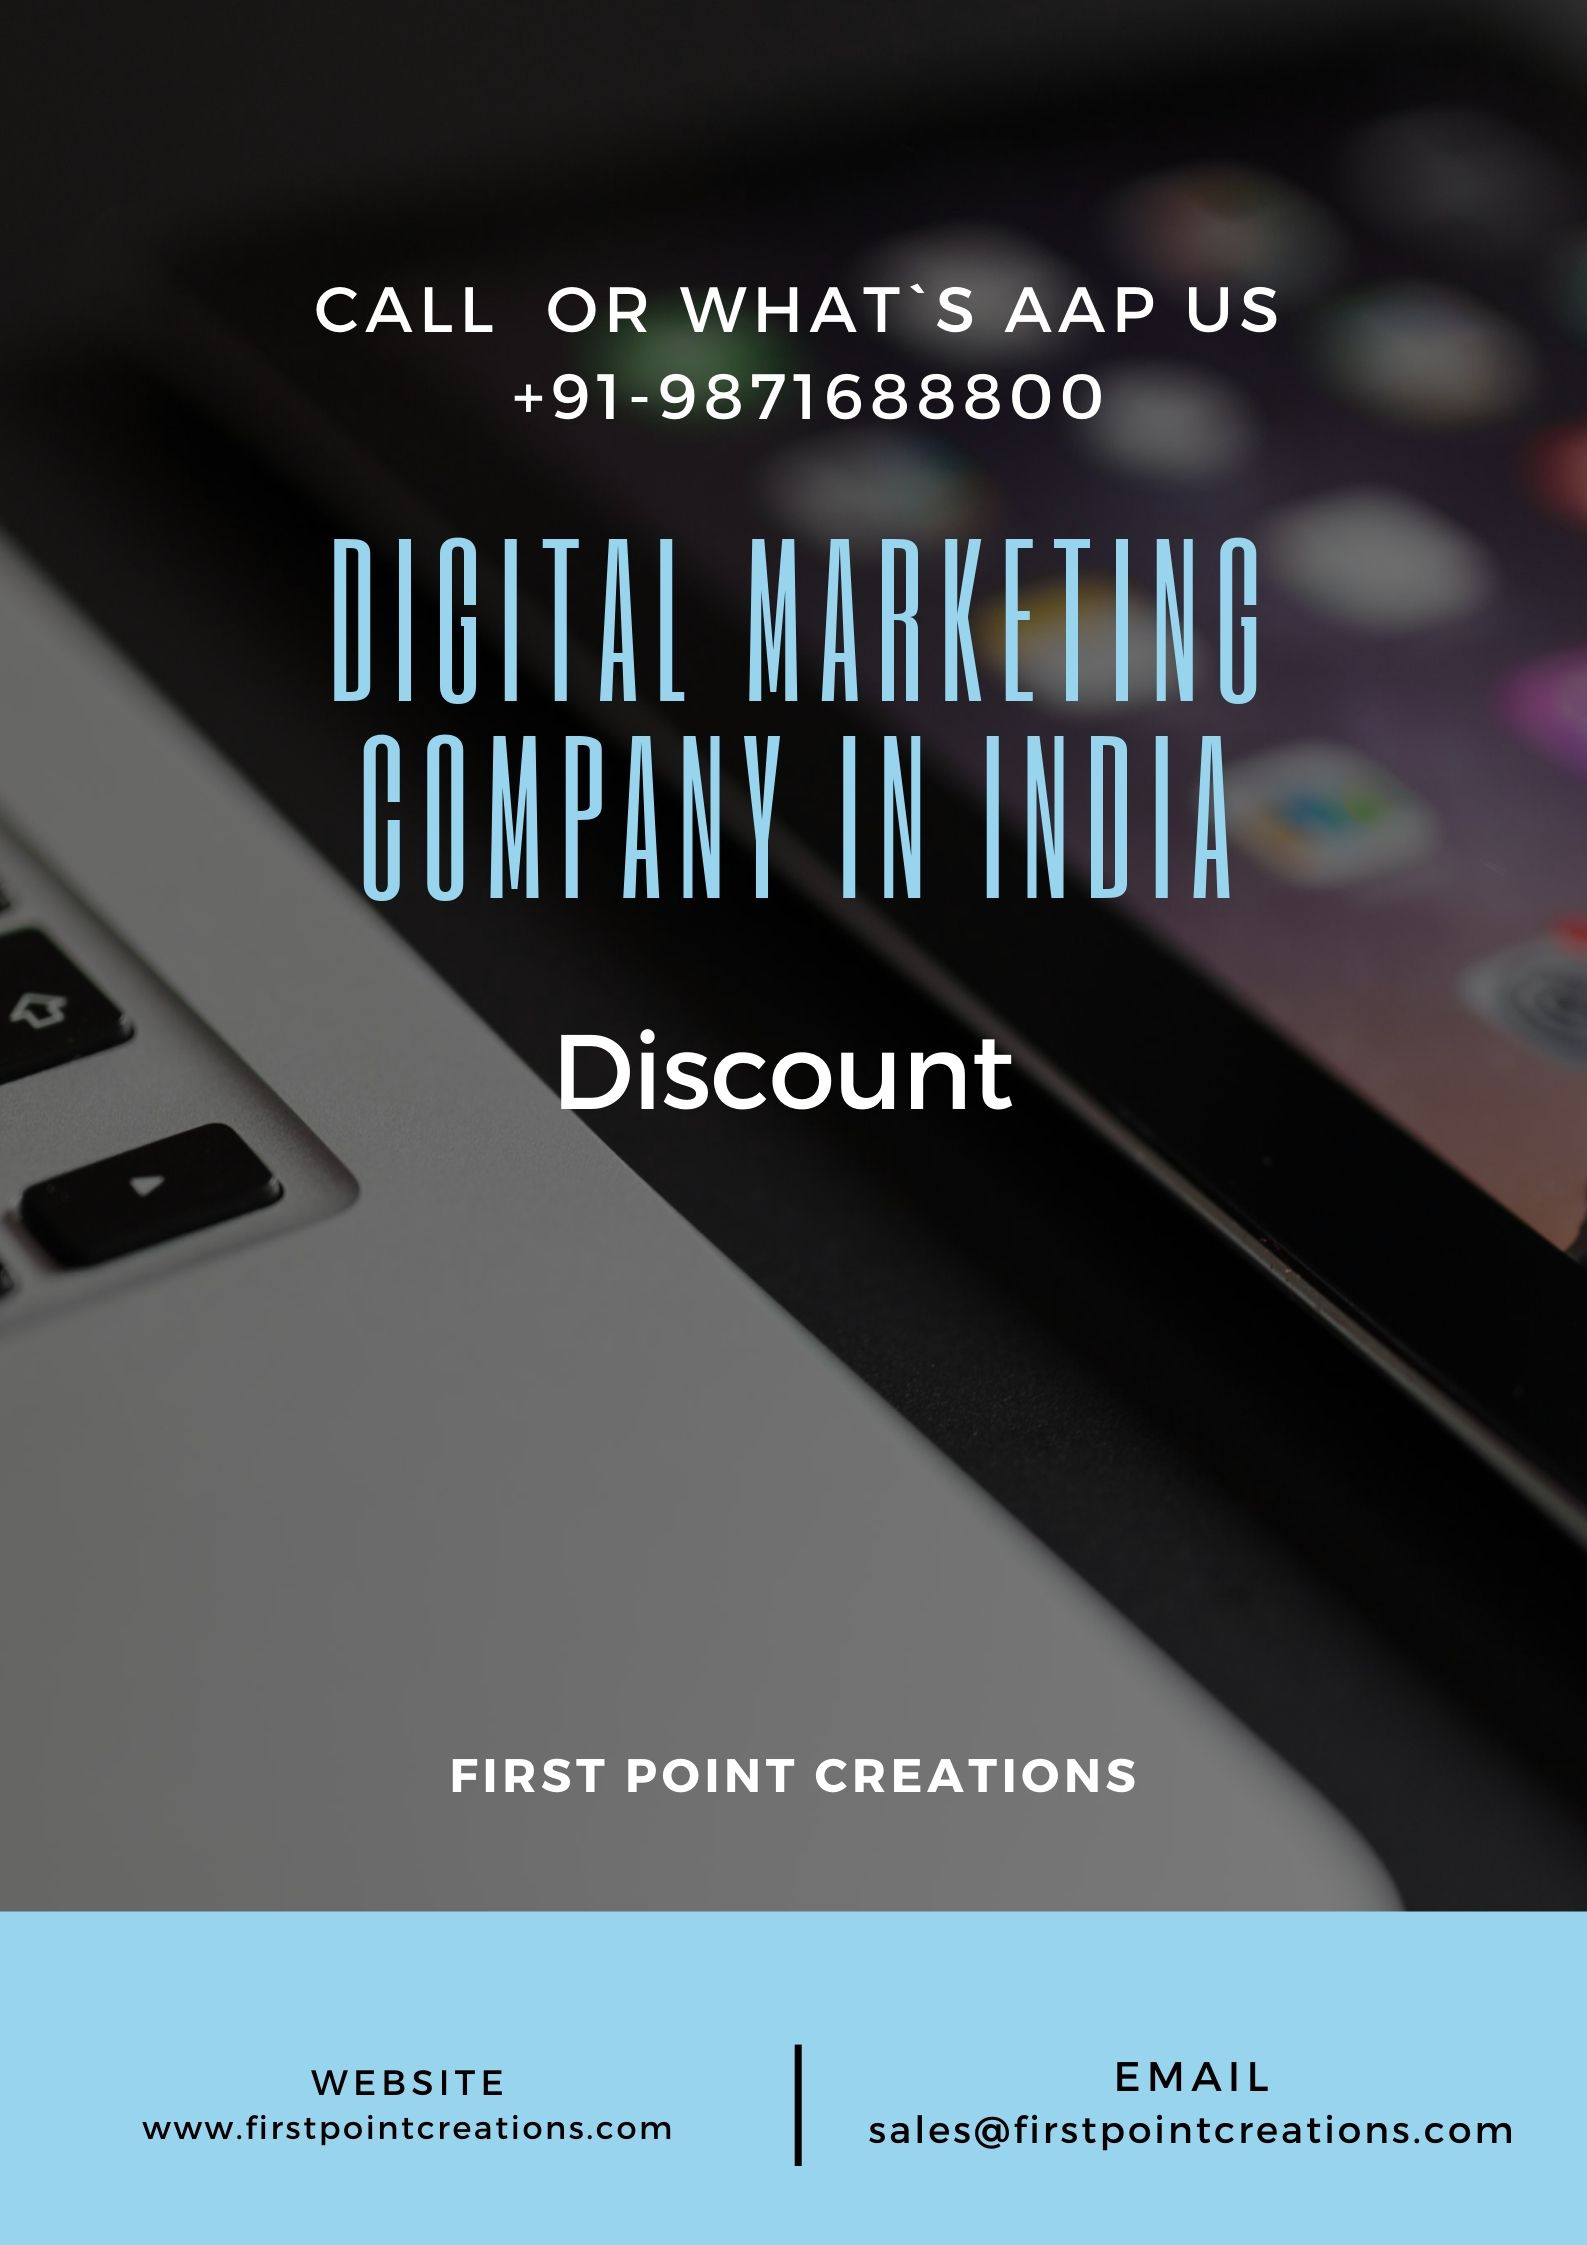 Digital Marketing Company In India